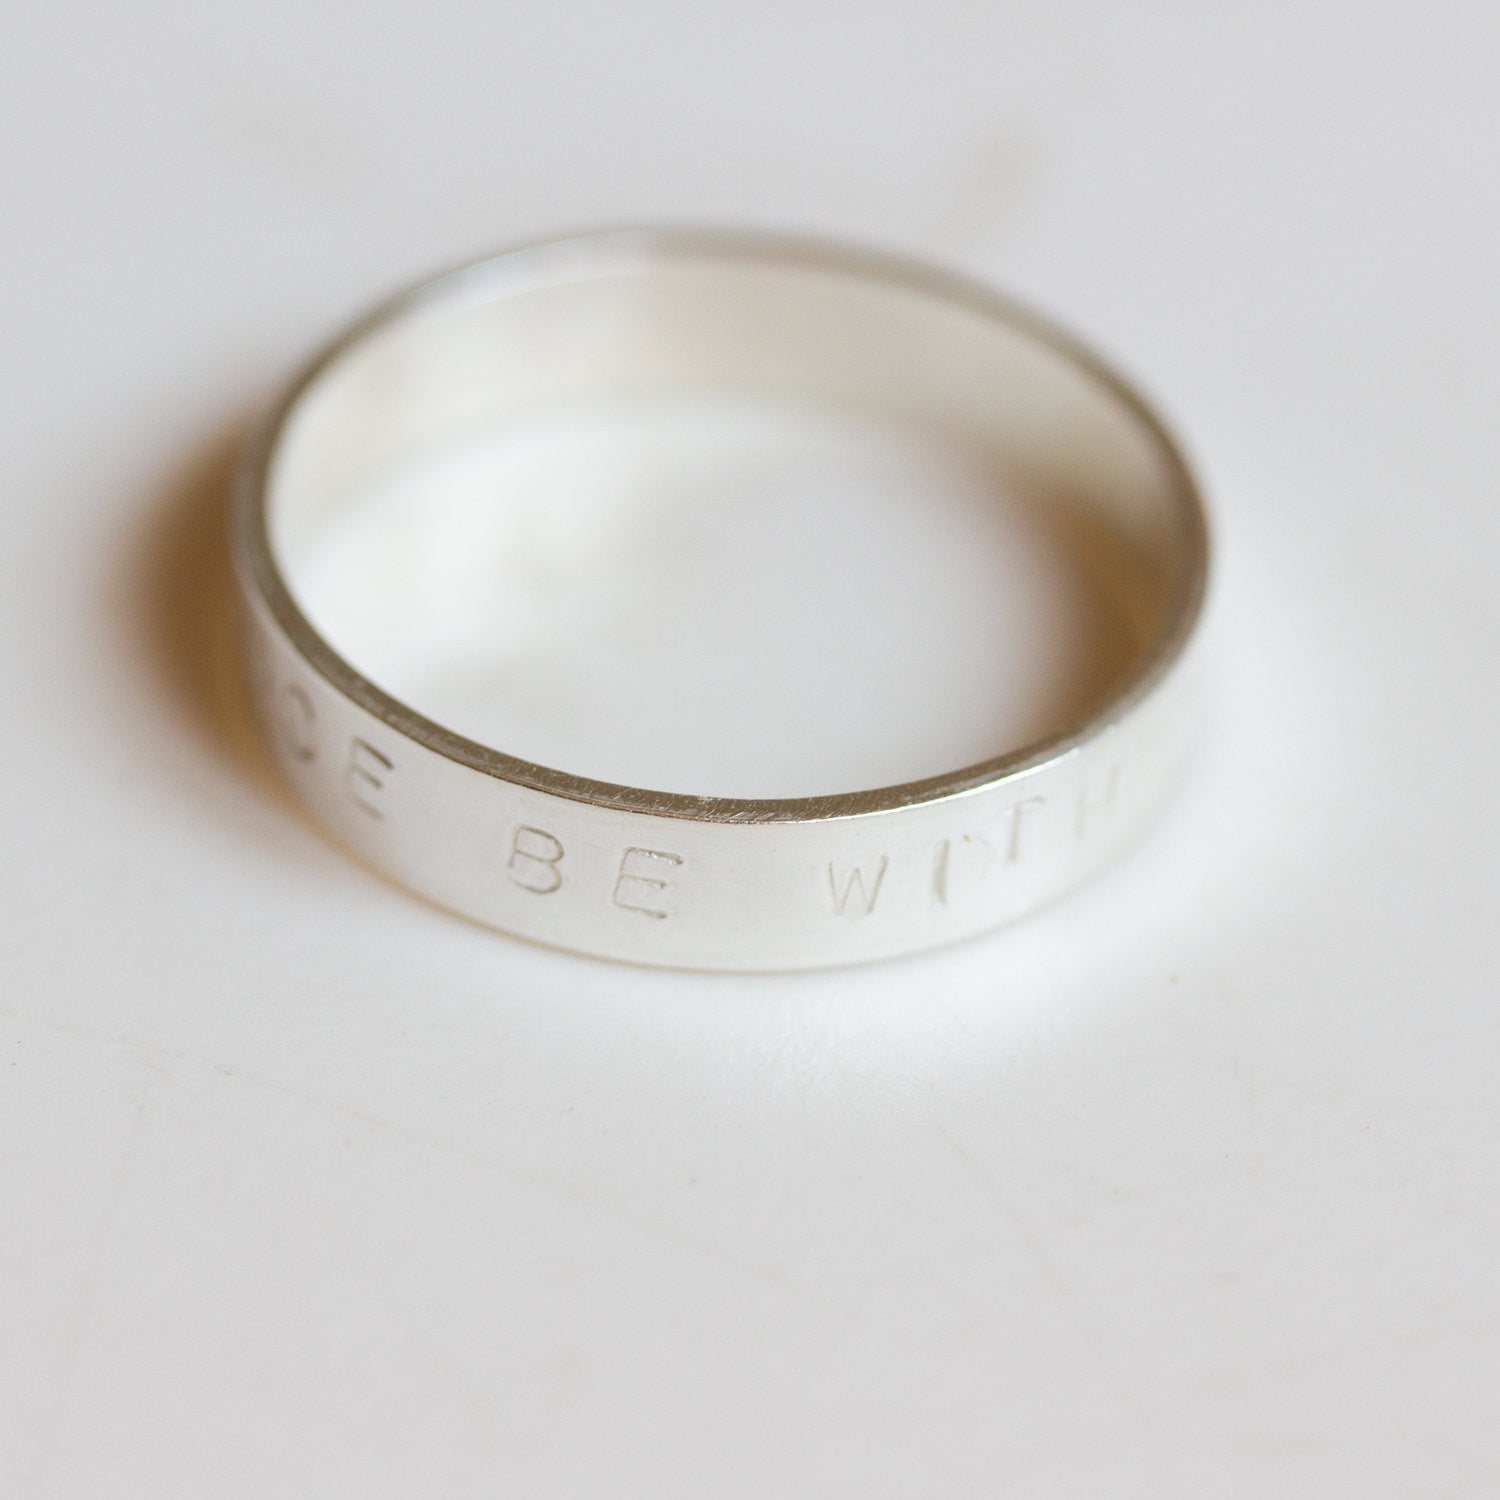 Custom Roman numeral ring - hand stamped men's sterling silver ring